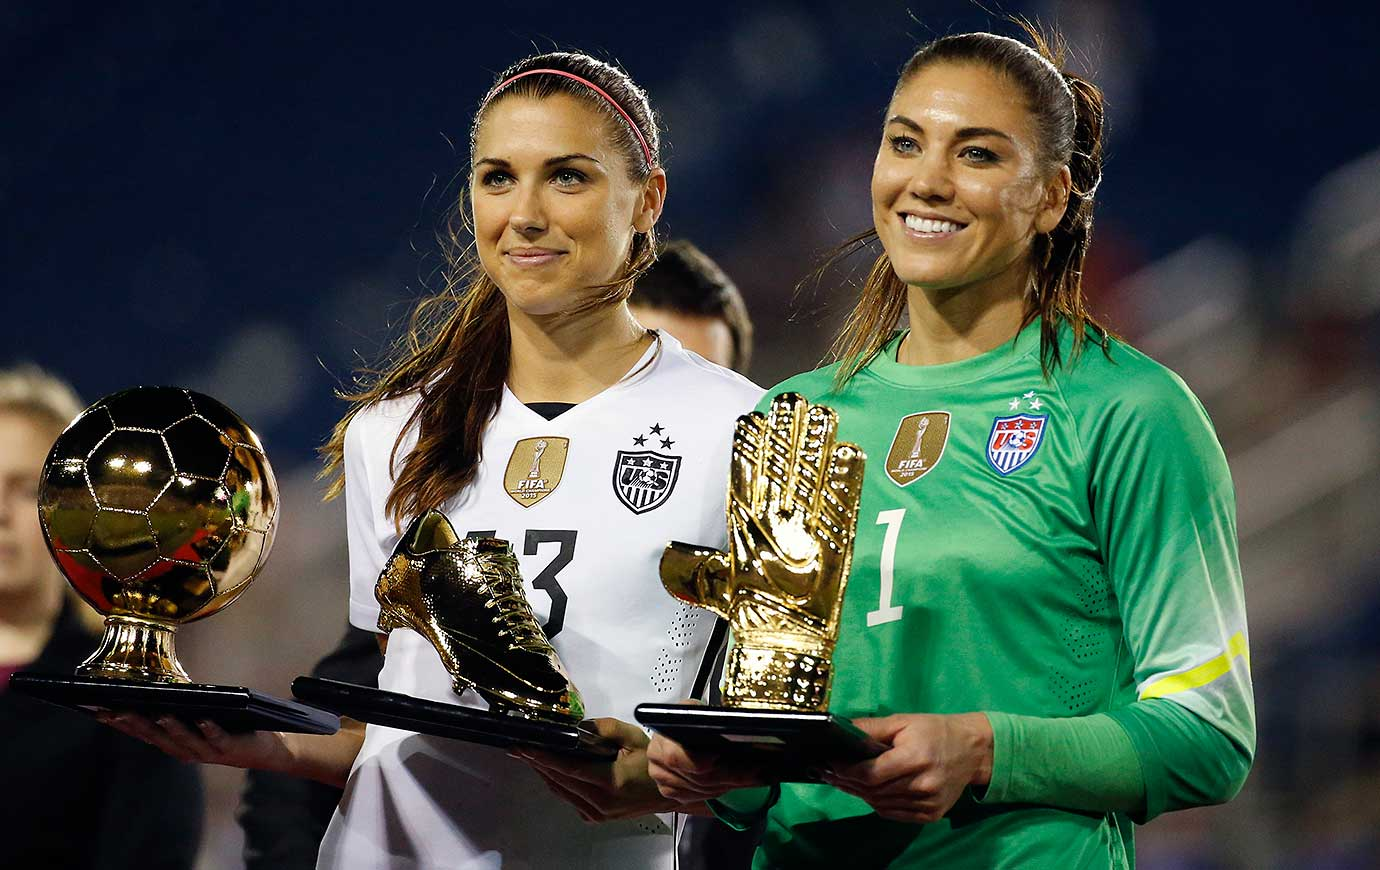 Alex Morgan, left, and Hope Solo pose with their trophies after winning the SheBelieves Cup tournament.